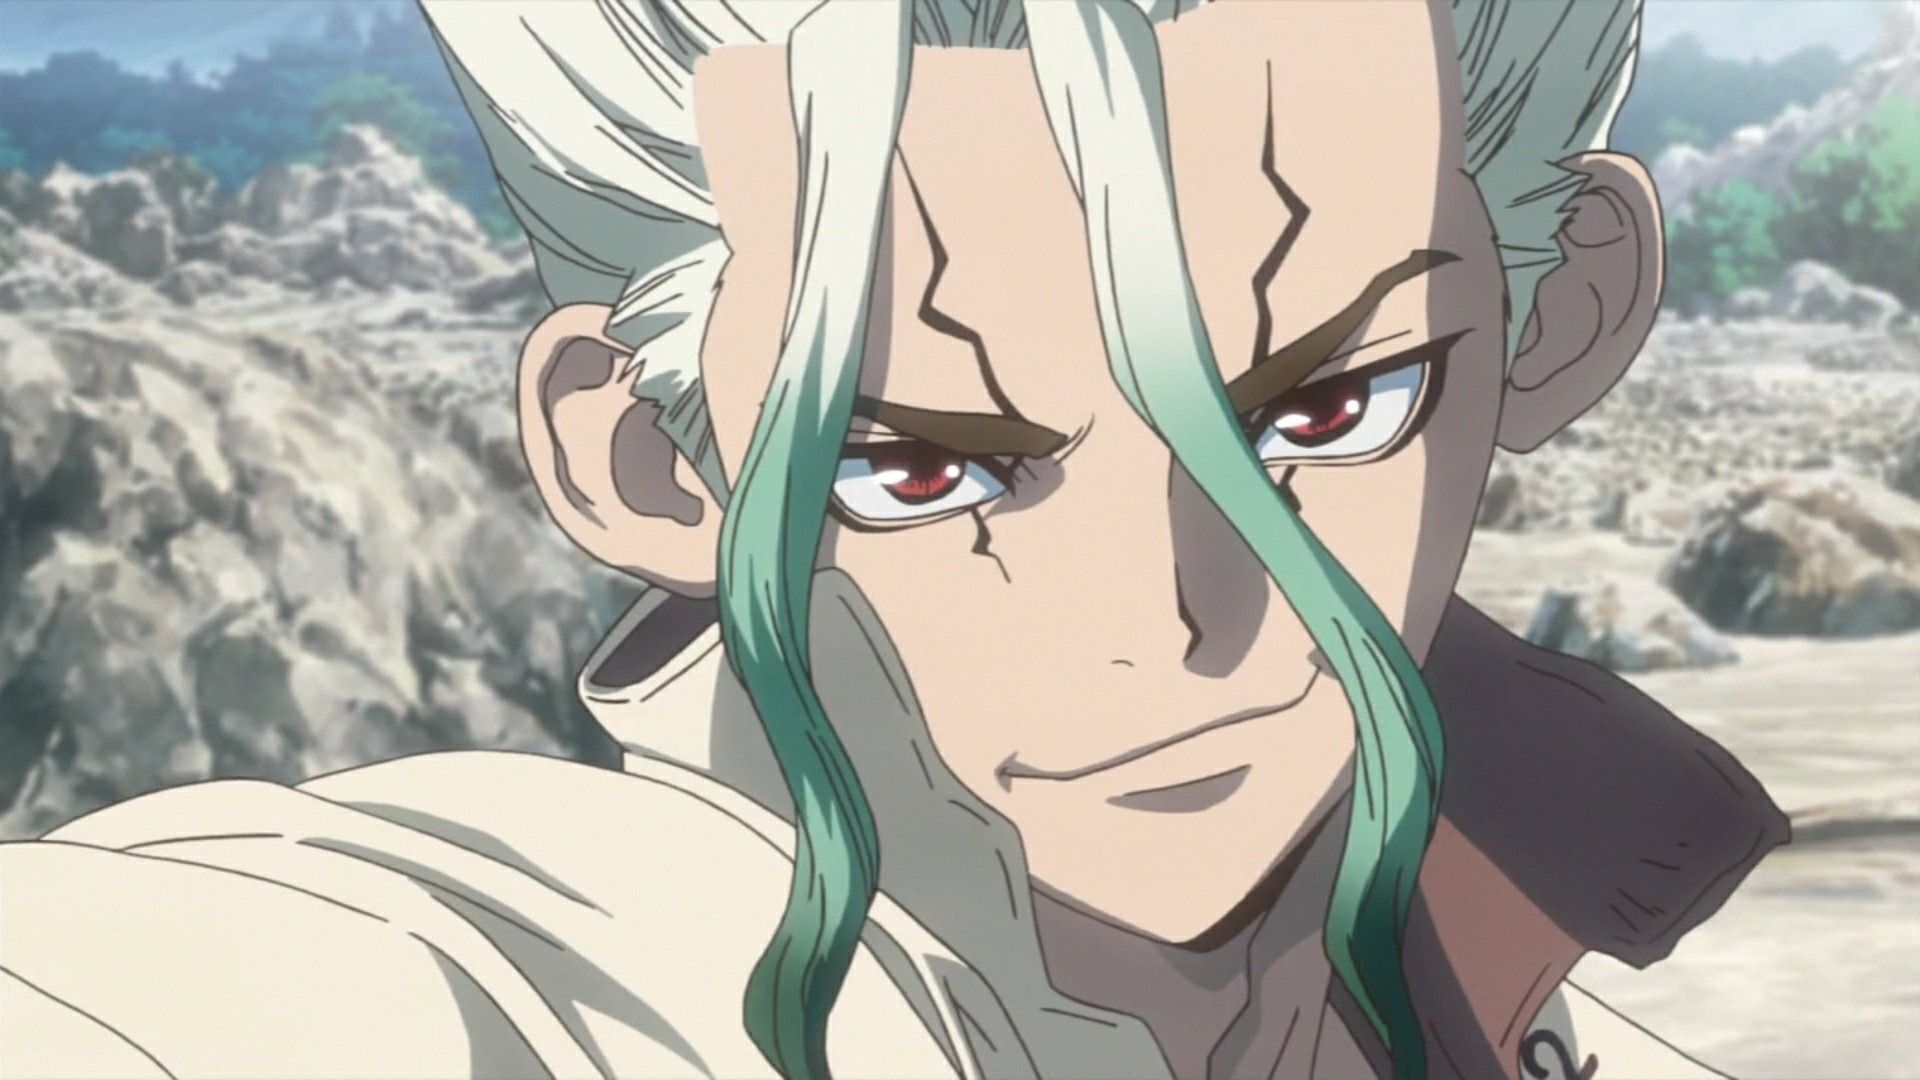 Pin by Shubham Sable on Dr. Stone Anime, Crunchyroll, Stone